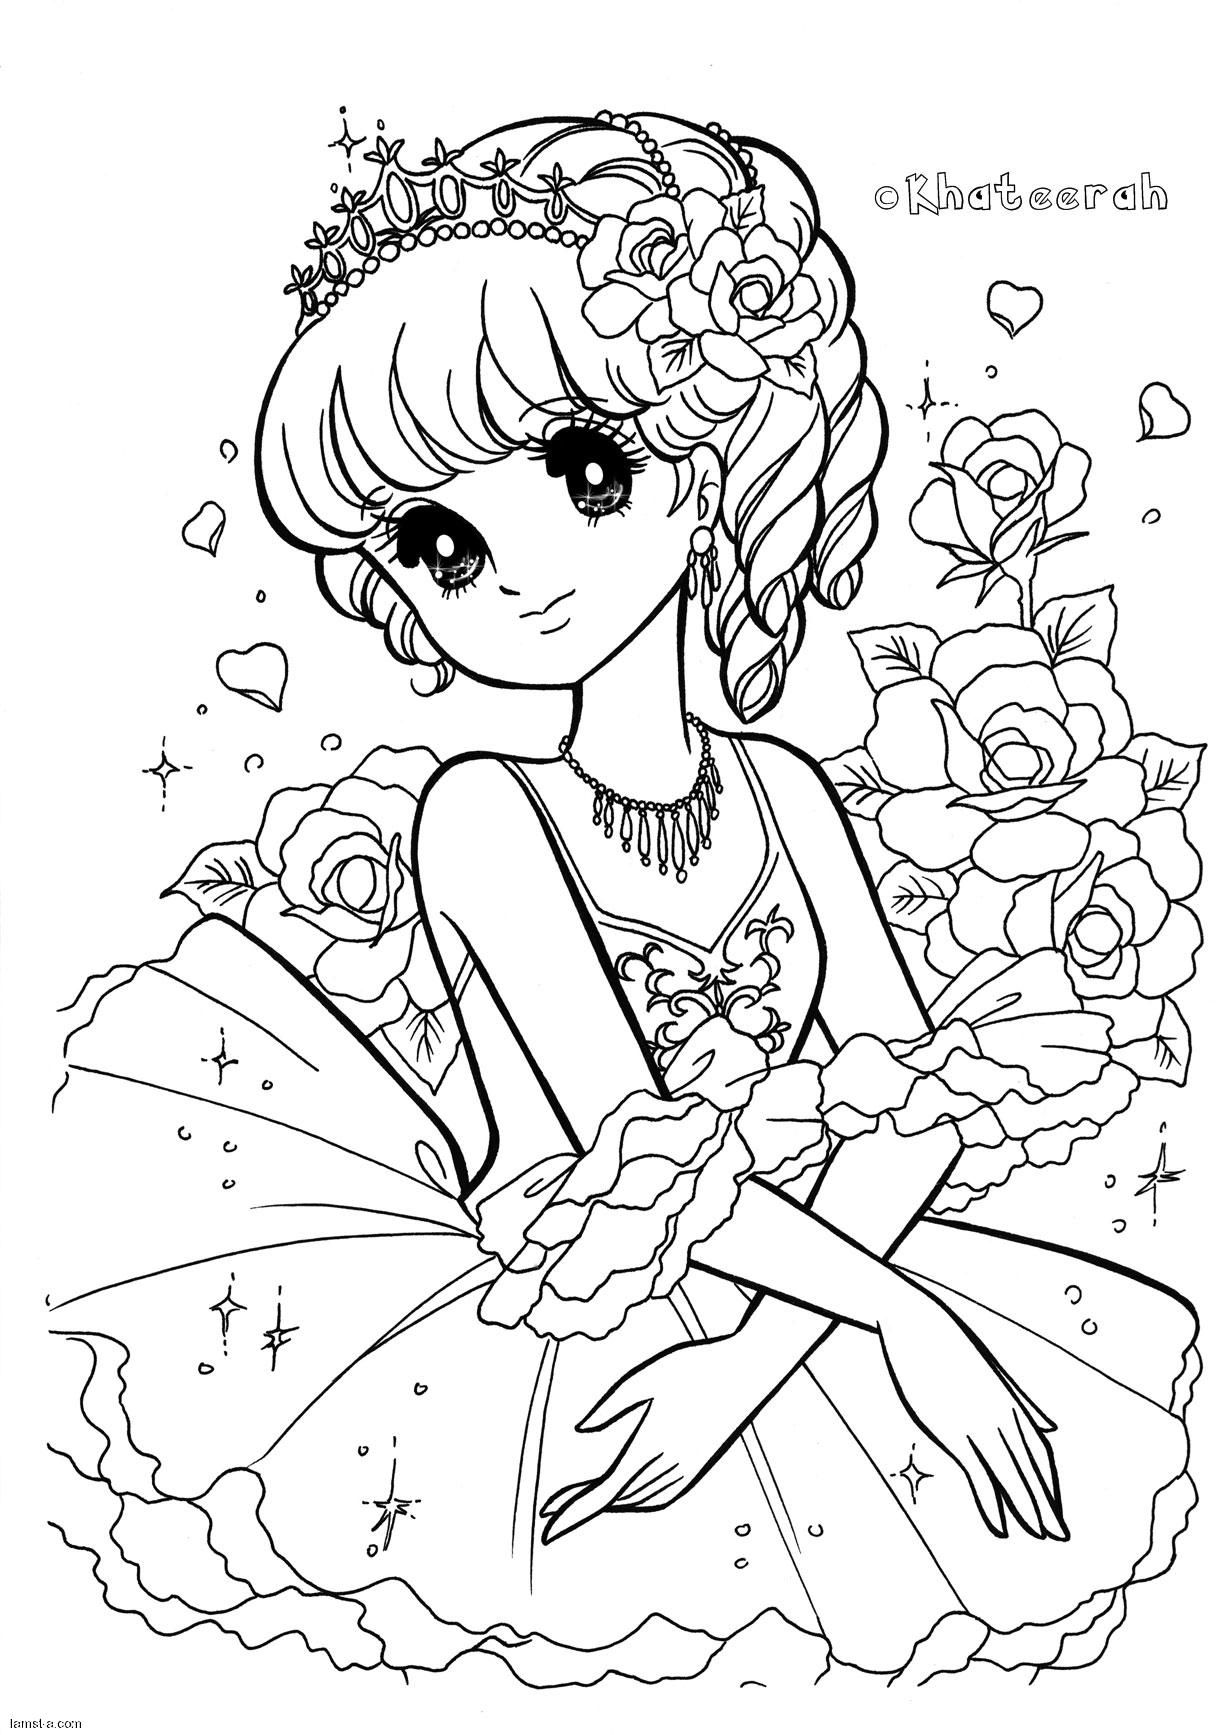 Pin By Marwa Rose On Art Cute Coloring Pages Coloring Books Coloring Pages For Girls